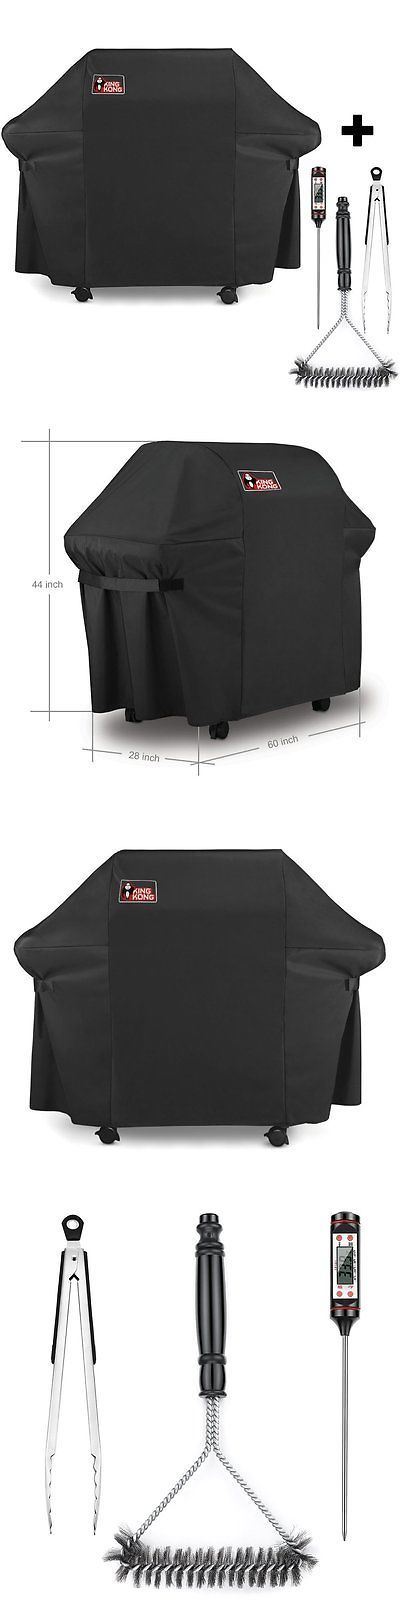 barbecue and grill covers kingkong 7553for weber gas grill cover kit